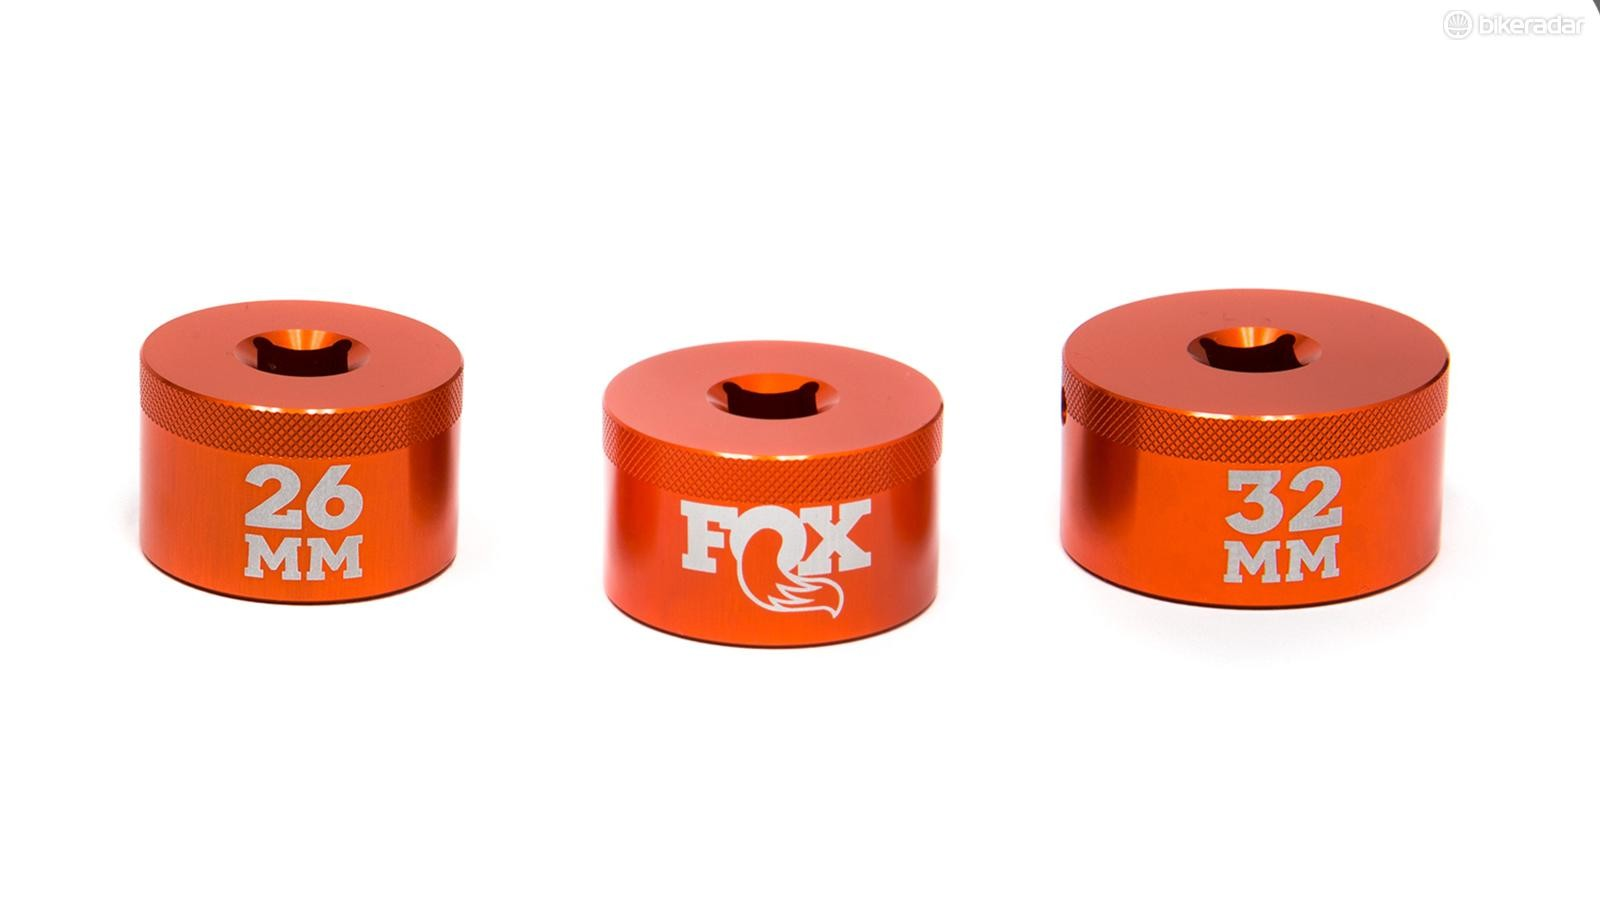 The Fox top cap sockets designed to fit snugly without marring the topcaps